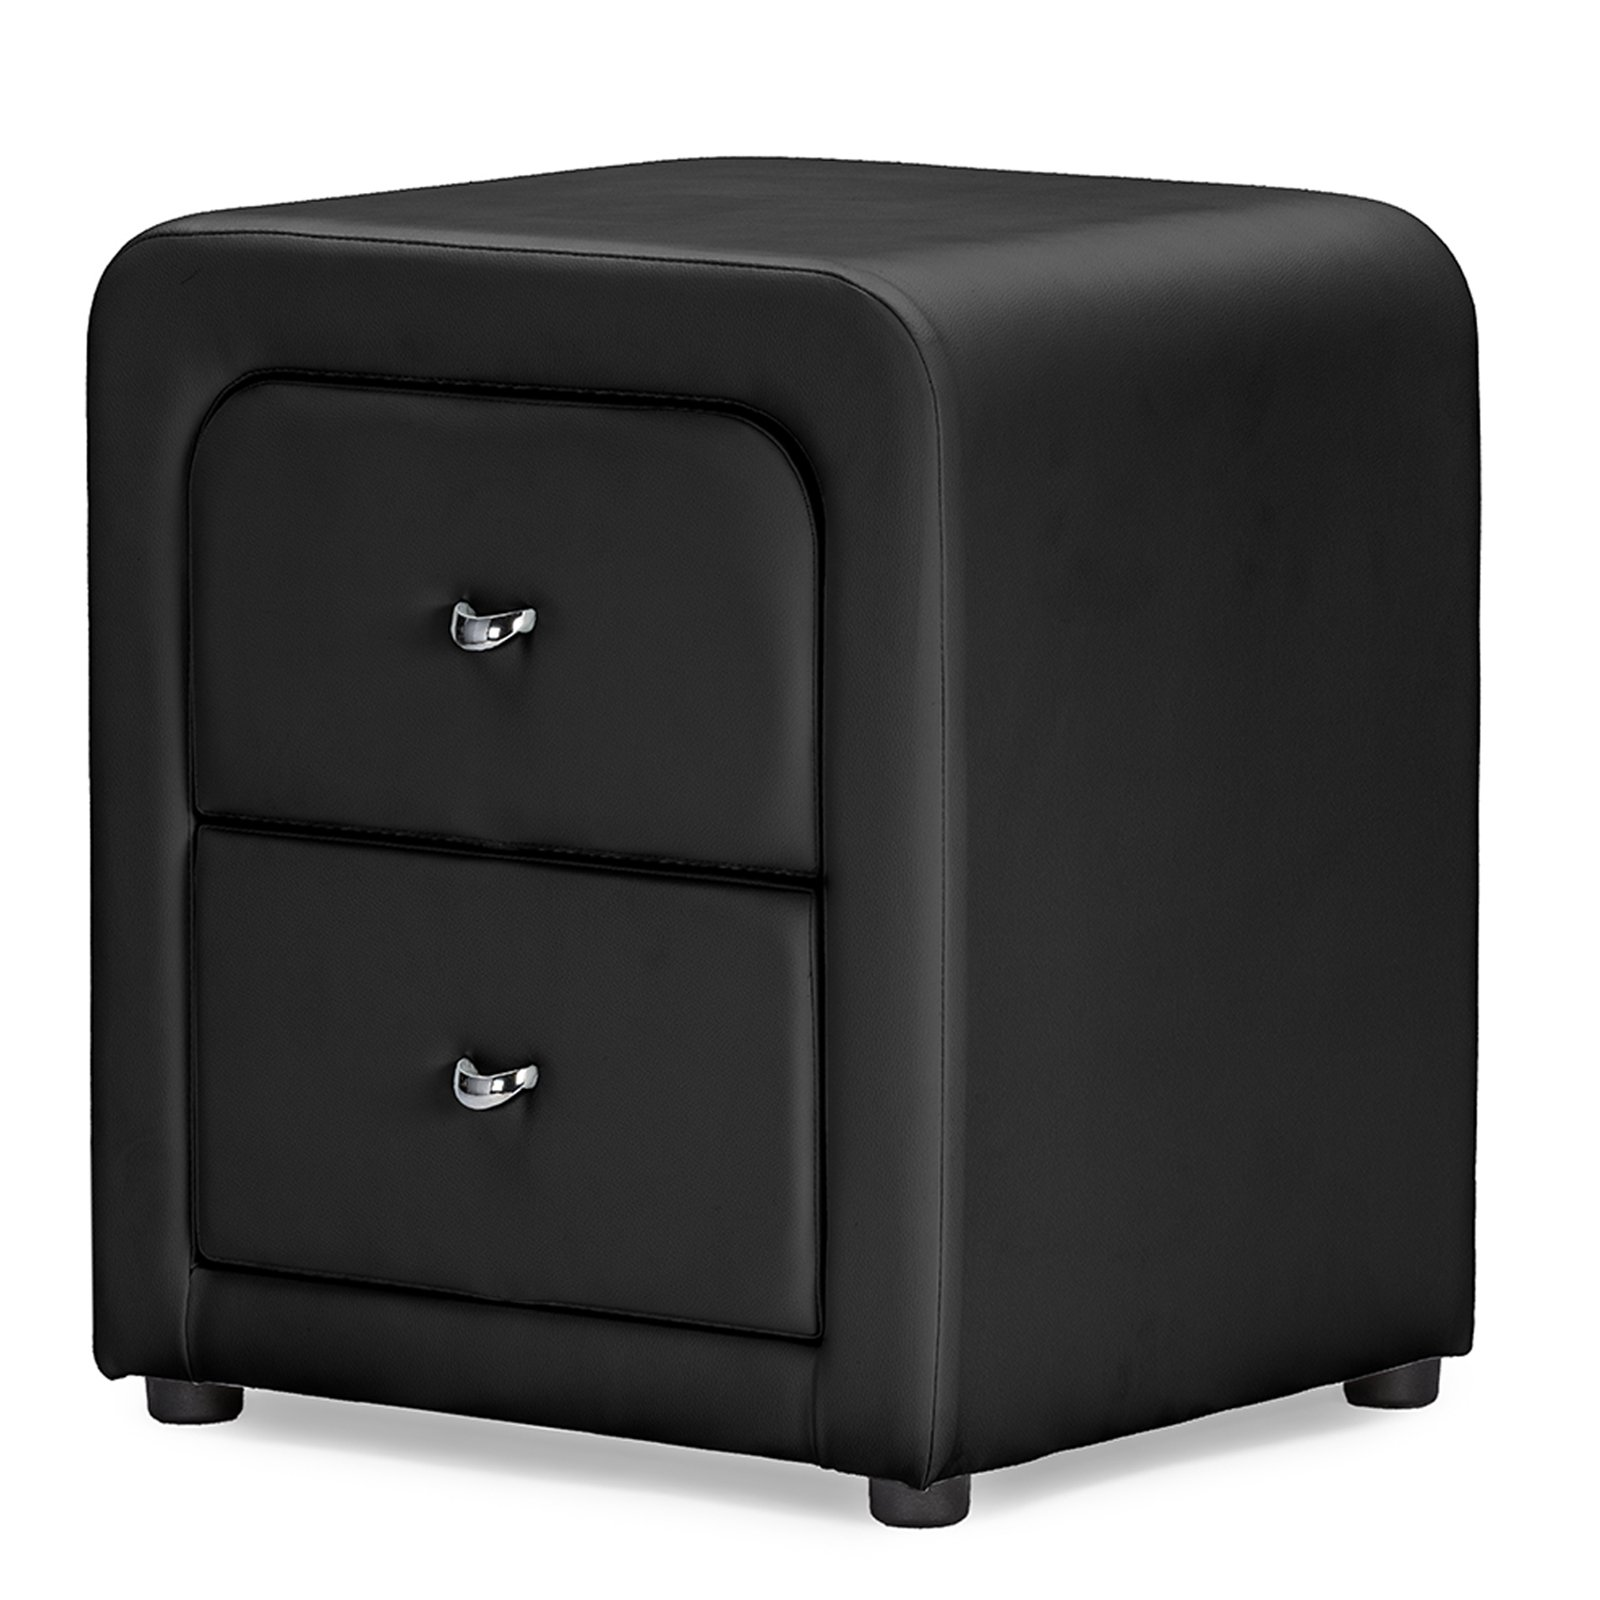 Baxton Studio Bourbon Faux Leather Upholstered Modern Nightstand, Multiple Colors